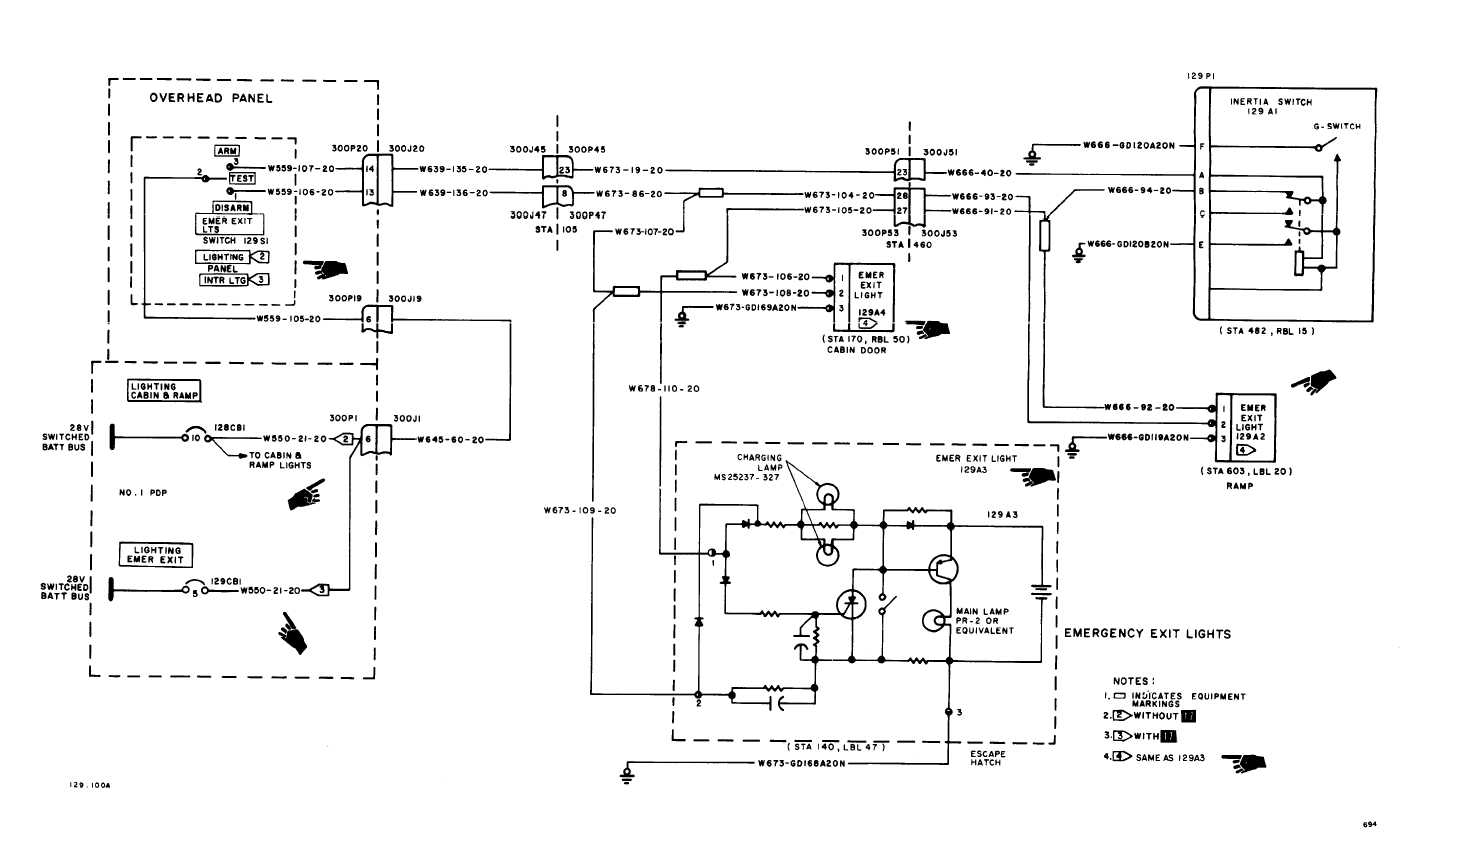 emergency exit sign wiring diagram Collection-emergency exit sign wiring diagram Download Emergency Exit Lights Wiring Diagram In Lighting To Light DOWNLOAD Wiring Diagram 12-f